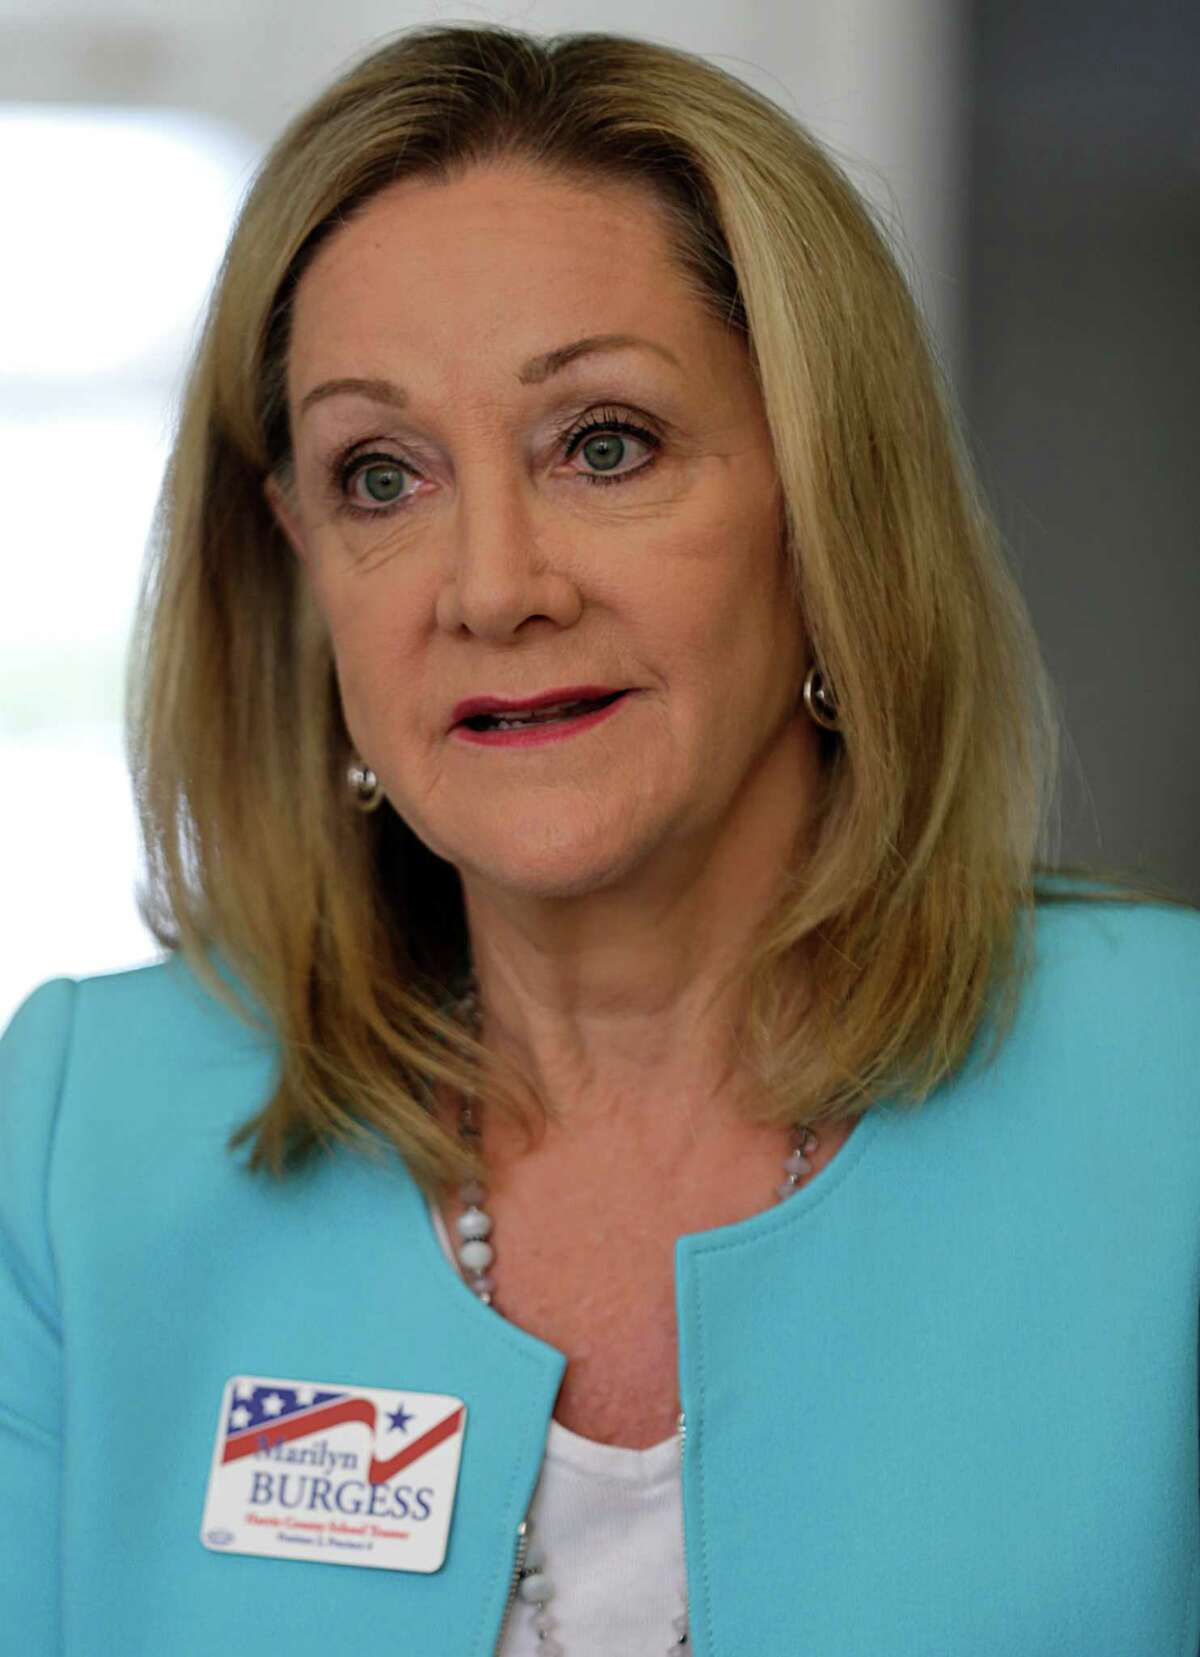 Marilyn Burgess is a candidate for Harris County Department of Education trustee, Position 2, Precinct 4. (Photo: James Nielsen / Houston Chronicle )